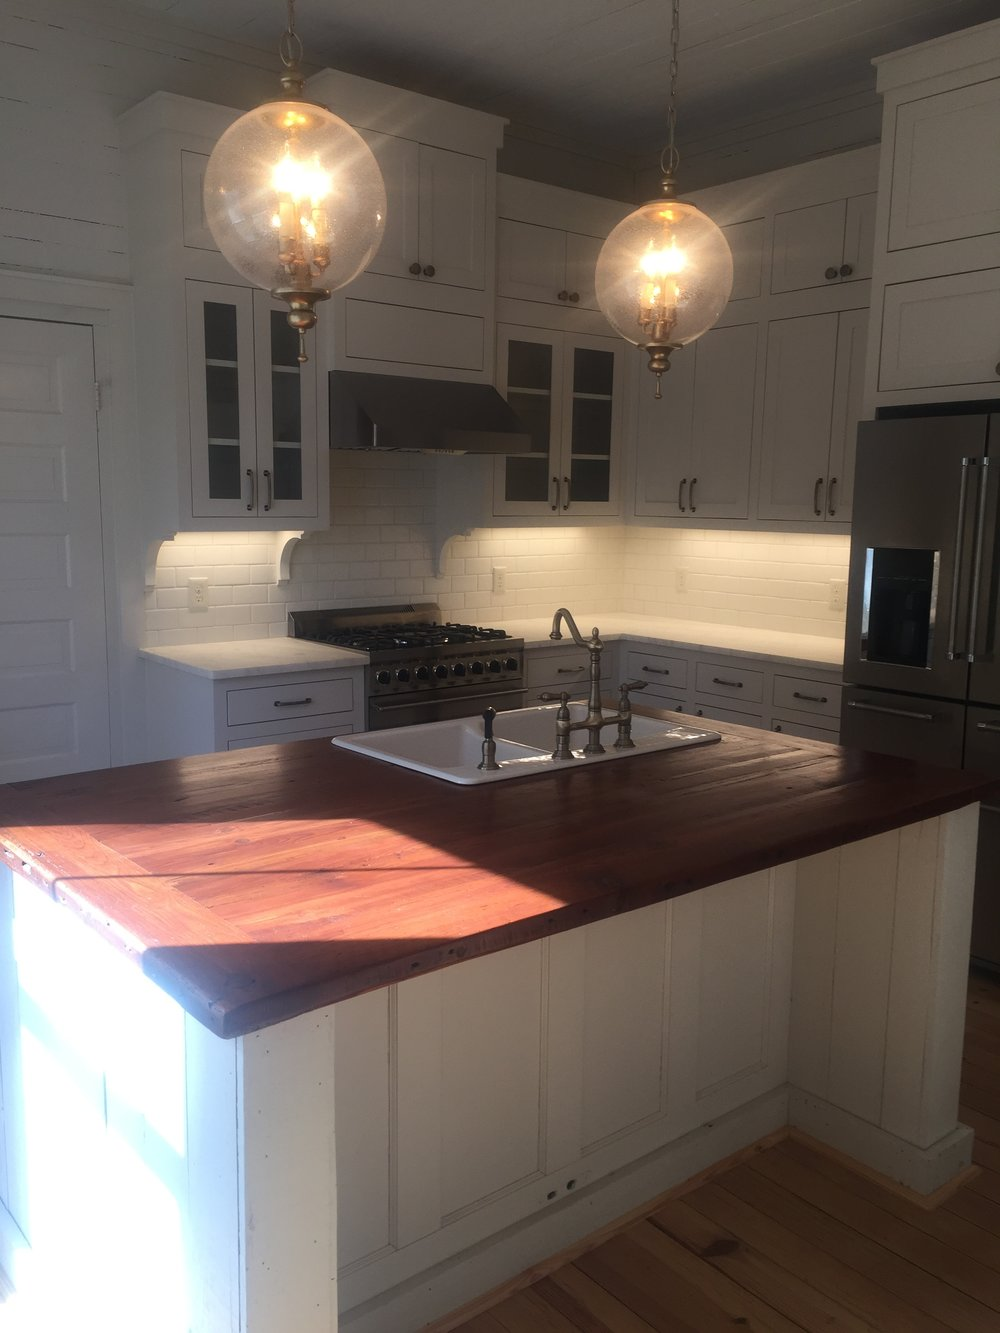 Shealy Kitchen pantry door closed island angle all AFTER.JPG